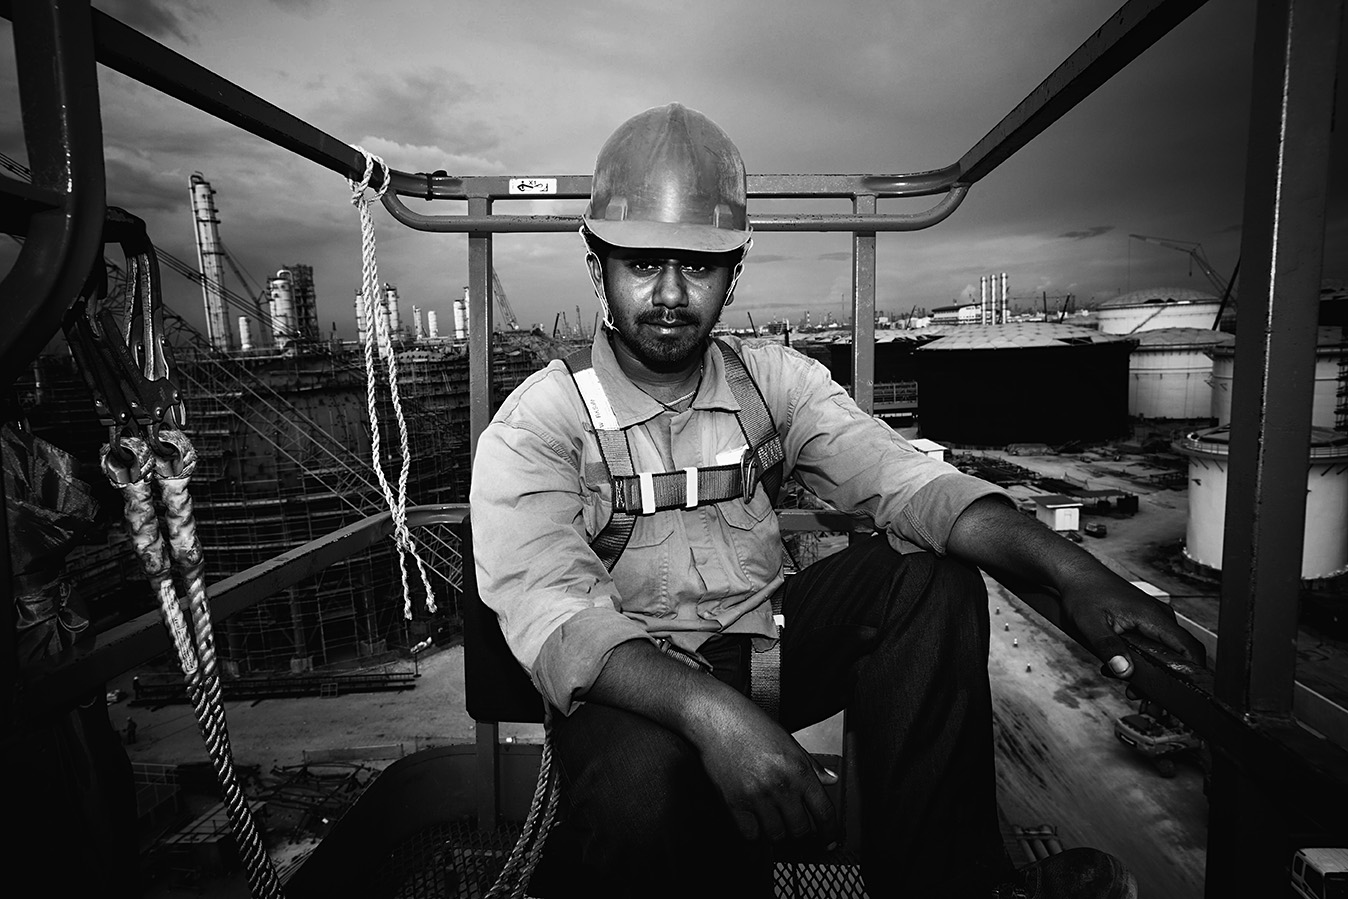 A boom-lift operator that was always with me in the last few months documenting the work process on-site. To me he is a man out there working hard to provide a living for his family back home. Thank you for always keeping me safe out there wherever you are now.